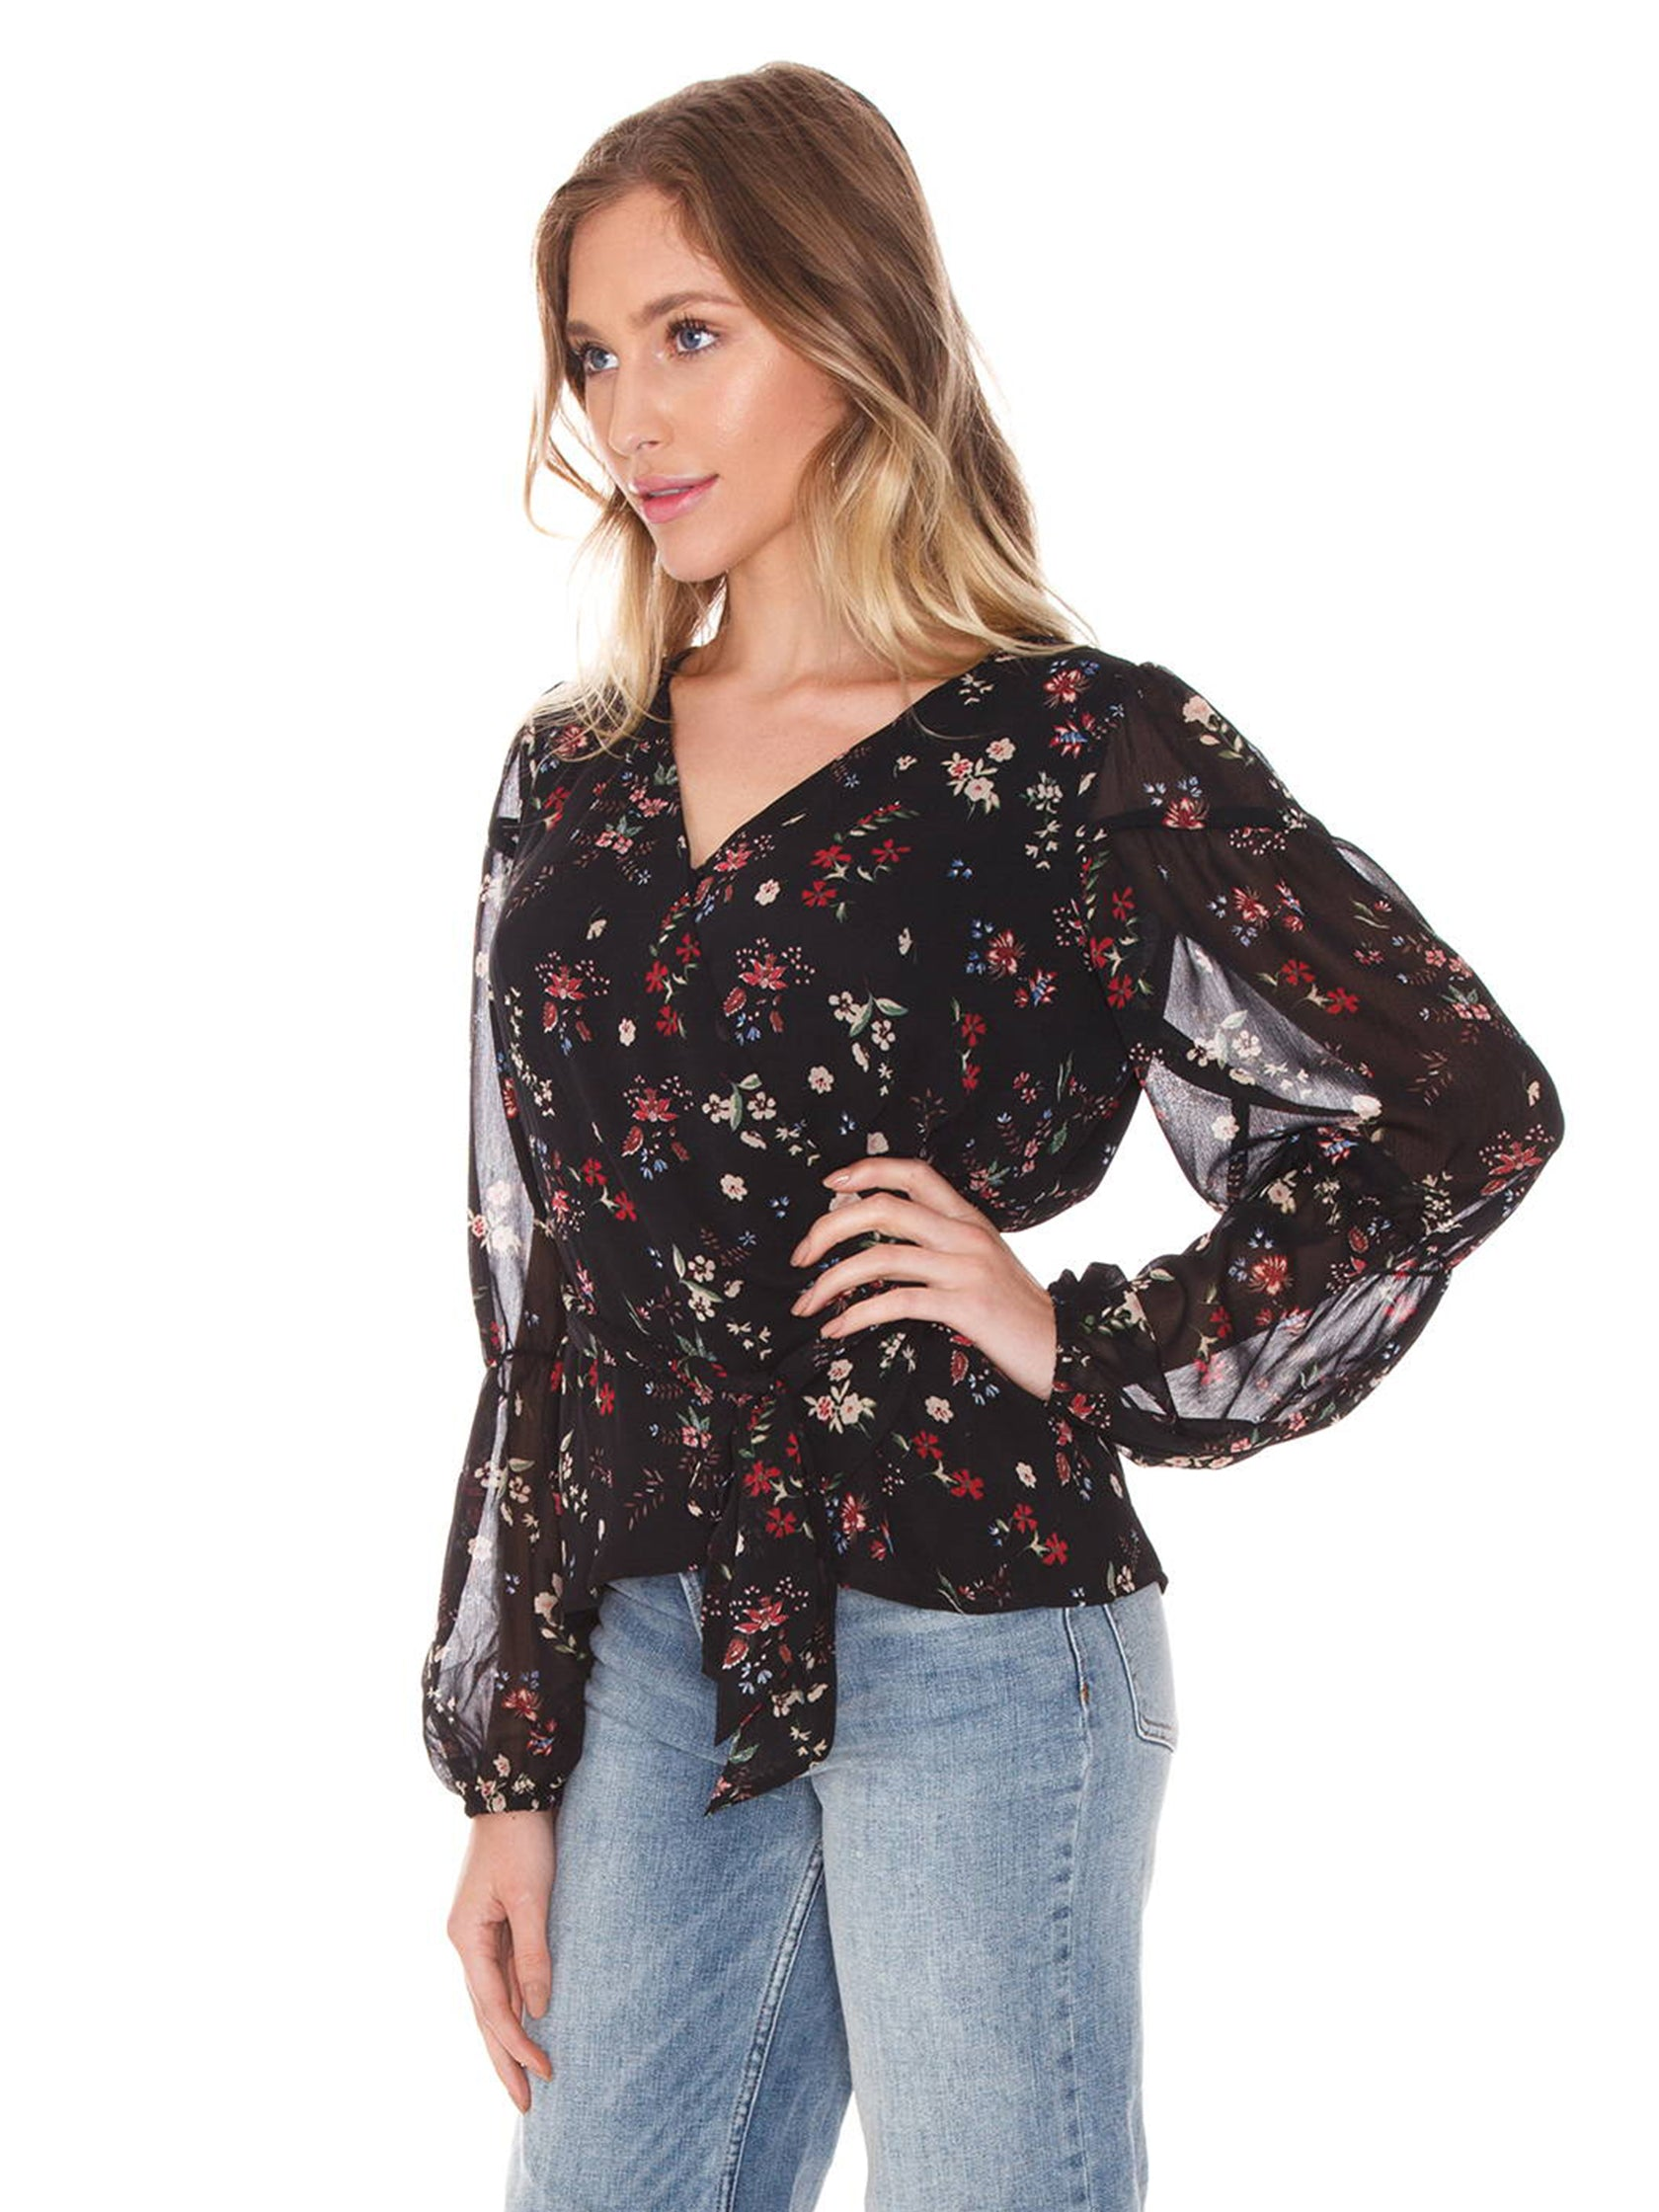 Women wearing a top rental from SANCTUARY called Surrey Wrap Blouse